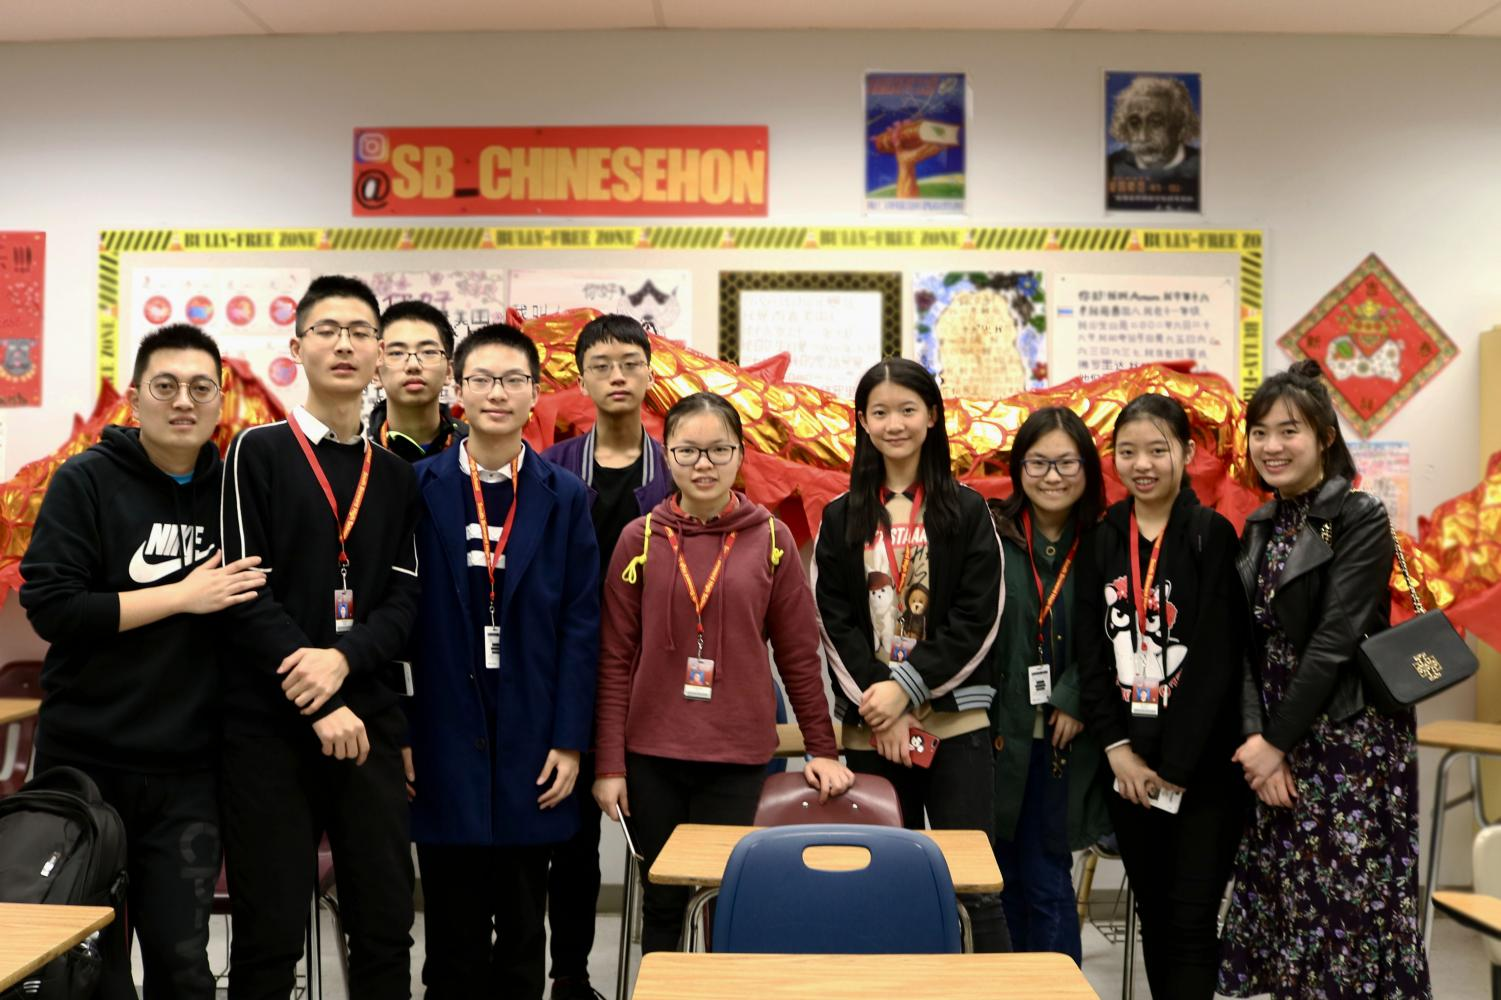 Eight students and two chaperones which traveled from China on a school trip to learn about America and how our country is.